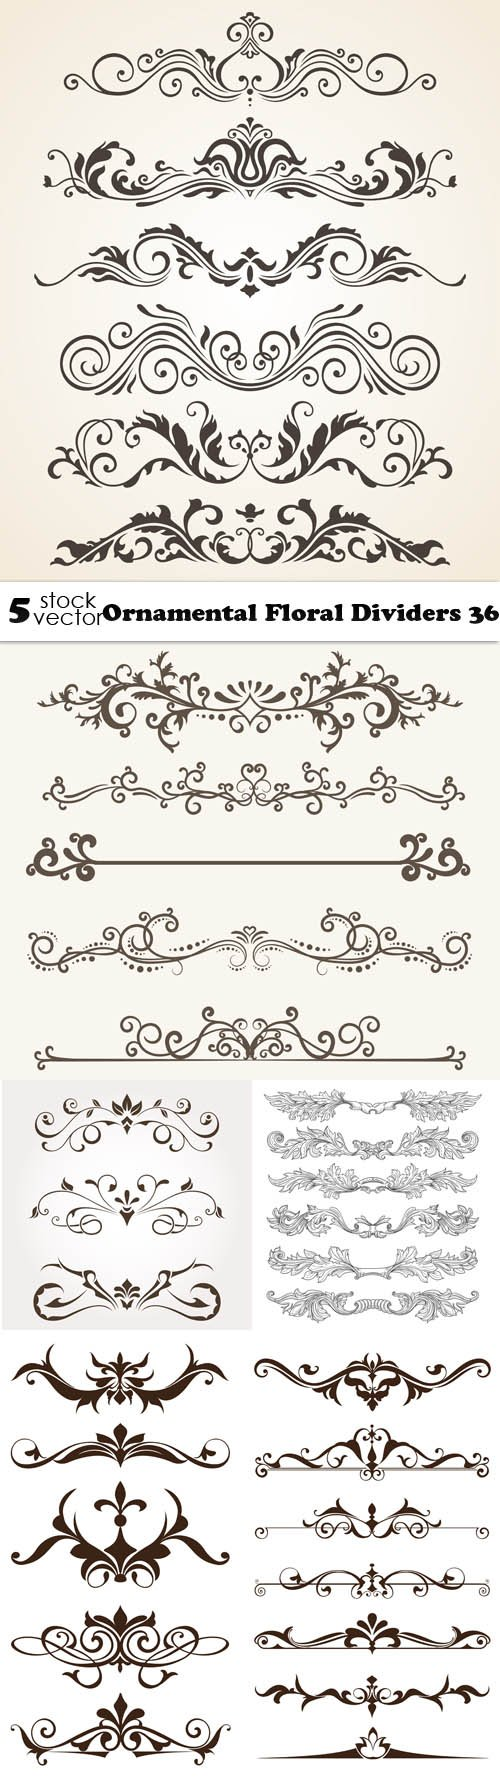 Vectors - Ornamental Floral Dividers 36